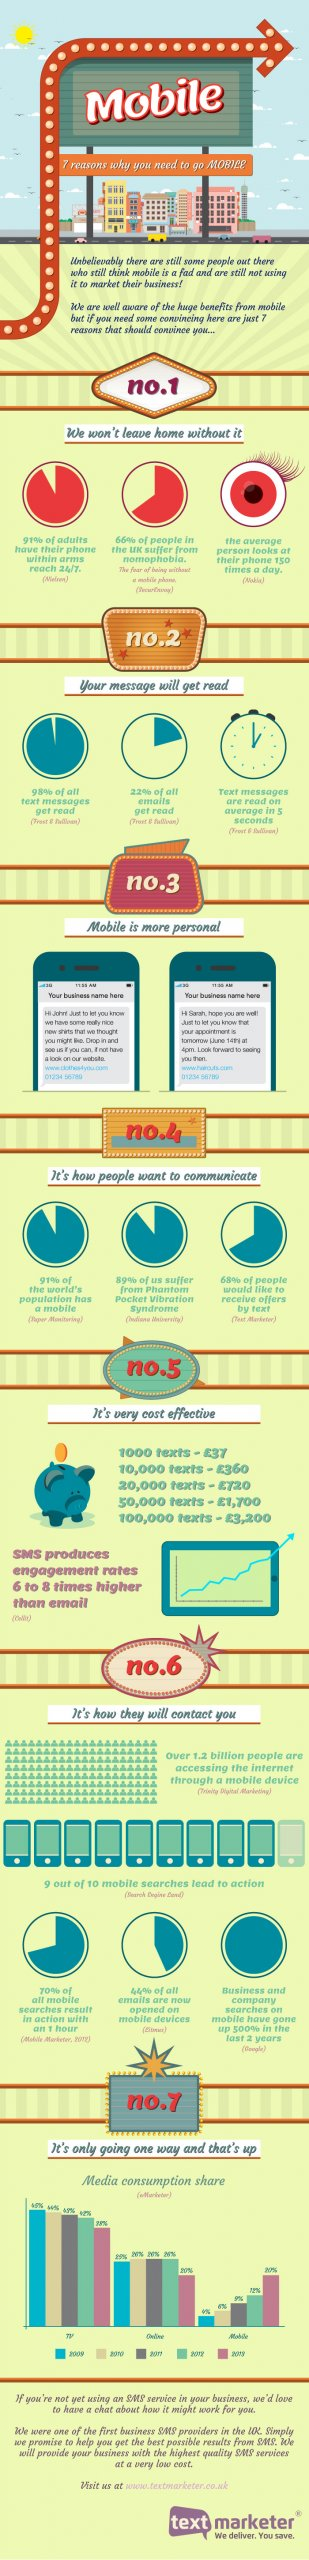 Text Marketer infographic - 7 reasons why your business needs to go mobile